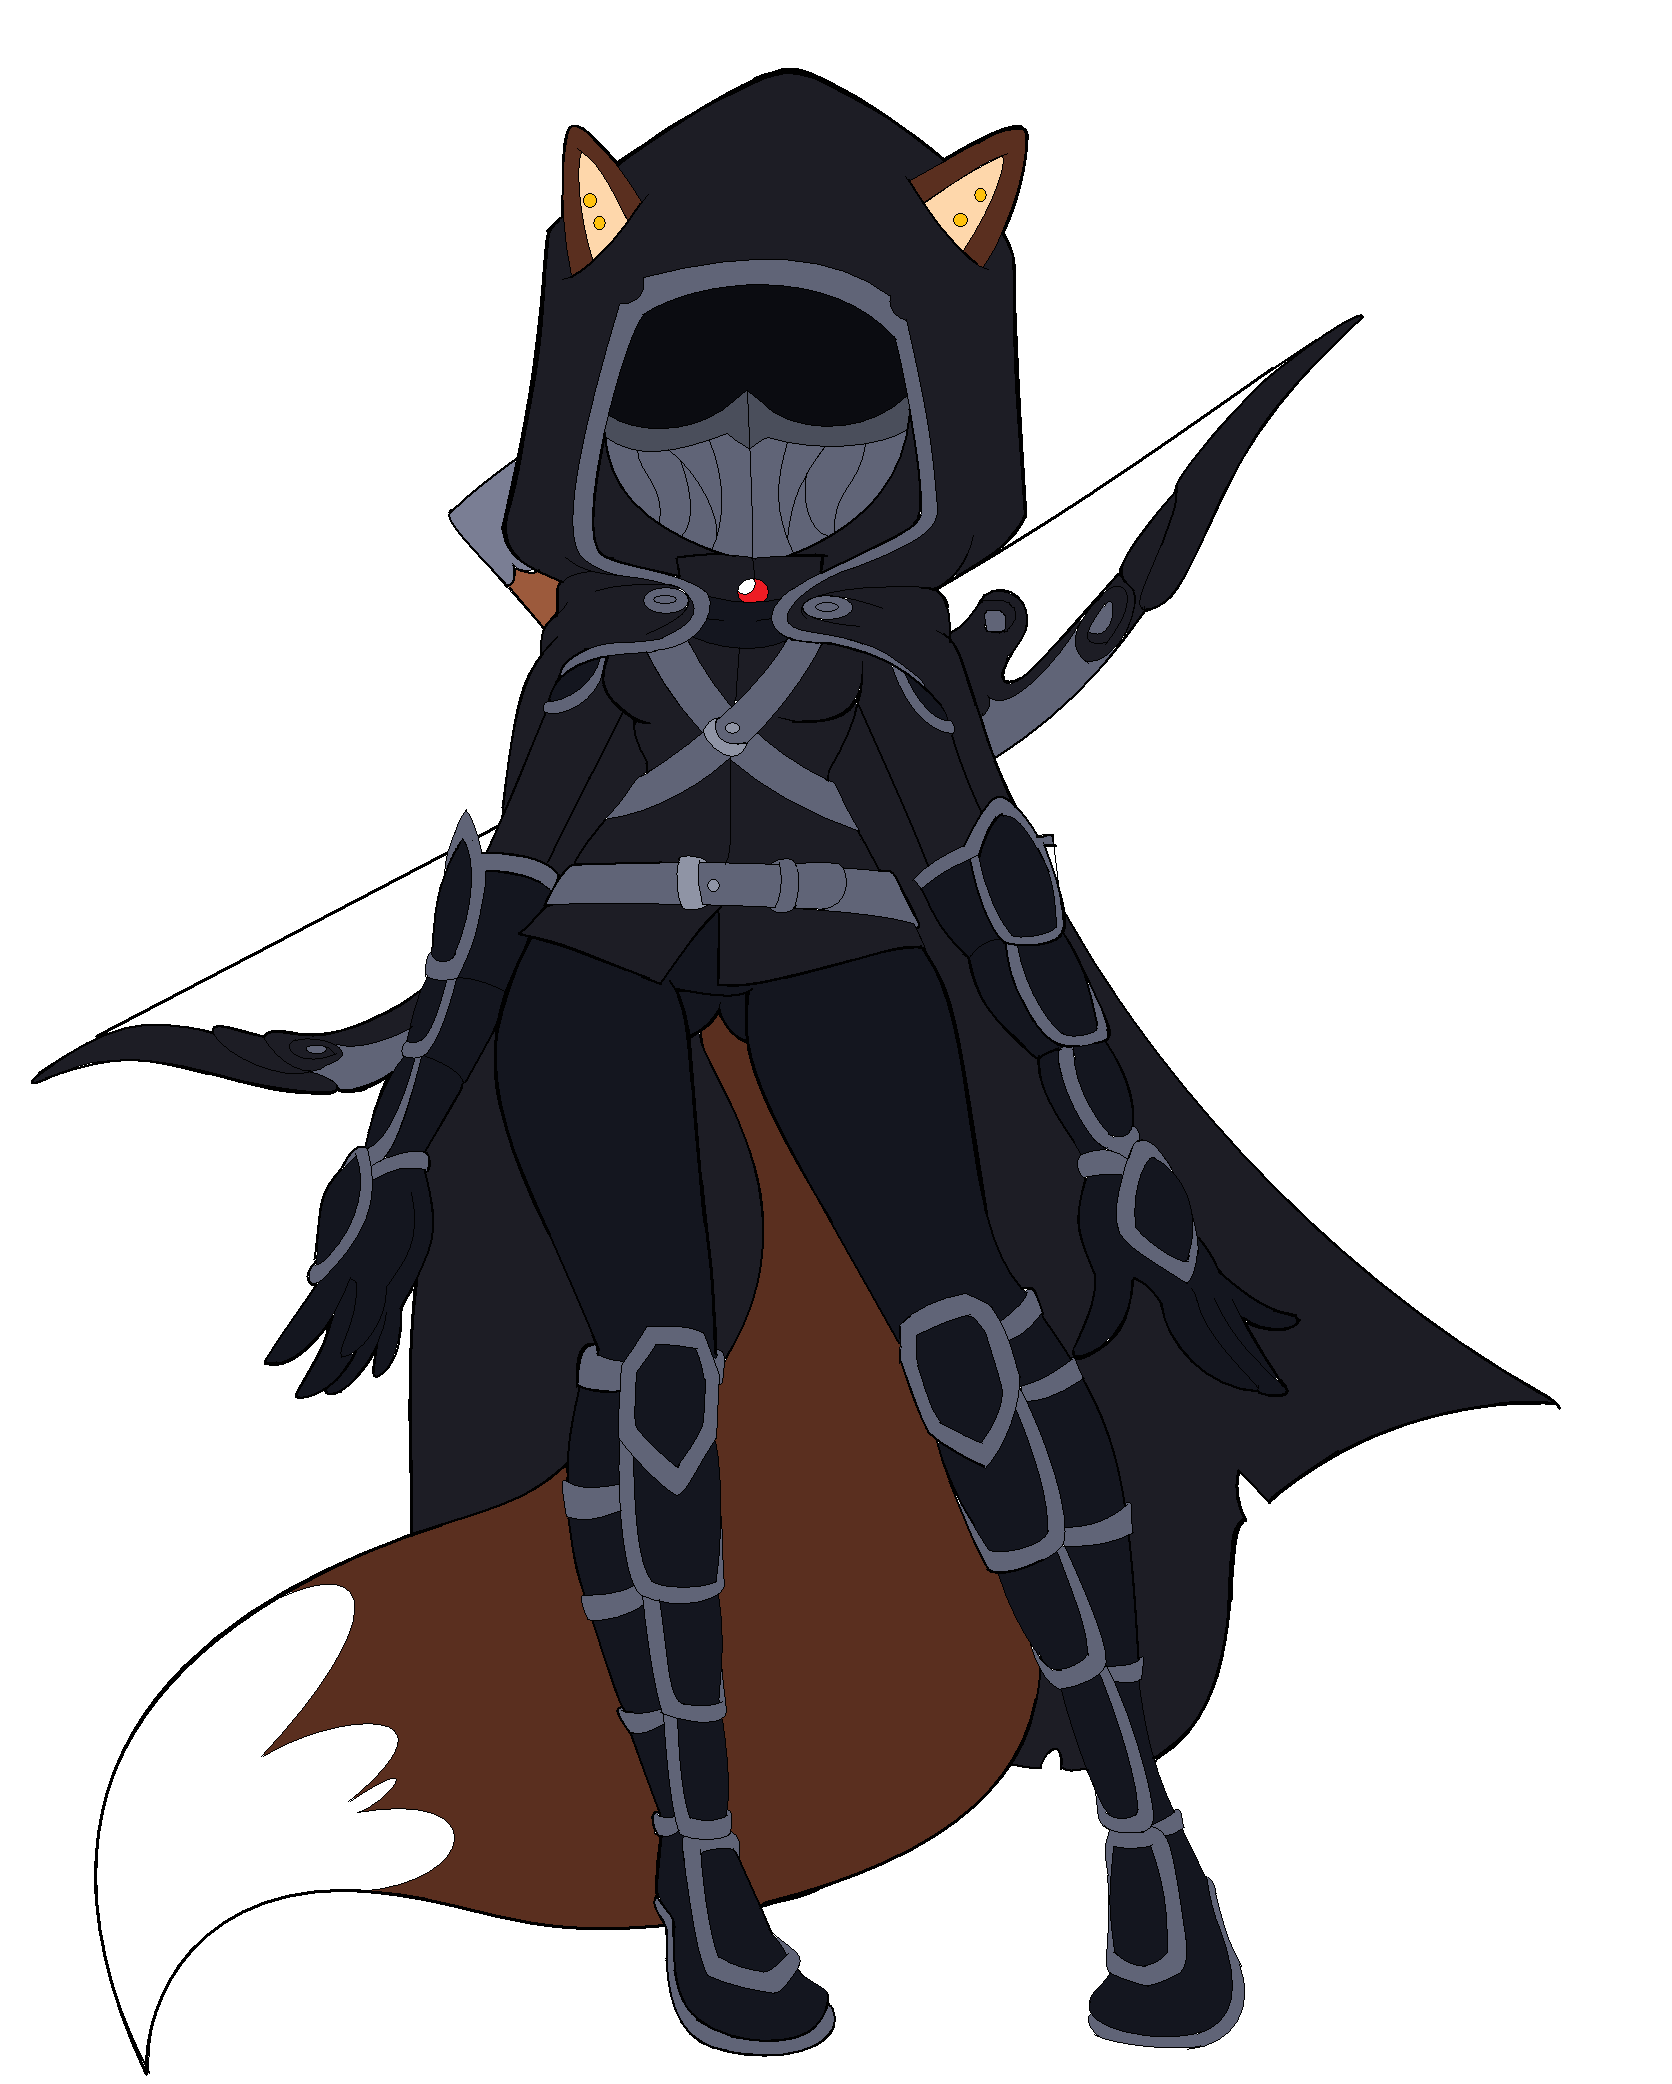 Drawn amour nightingale On Daddy SWAG SWAG armor